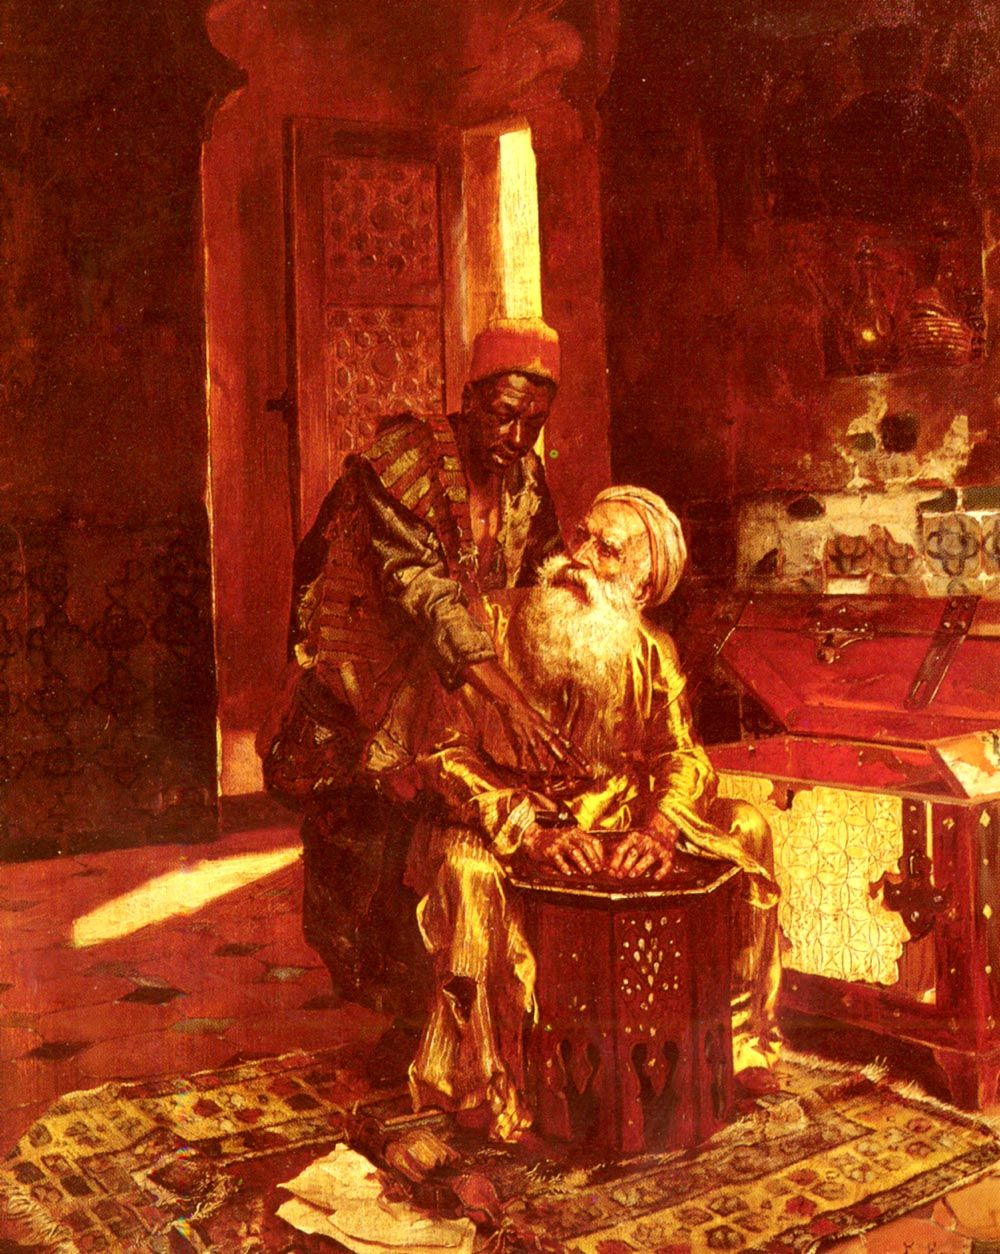 The Money Changer :: Rudolf Ernst - scenes of Oriental life (Orientalism) in art and painting ôîòî